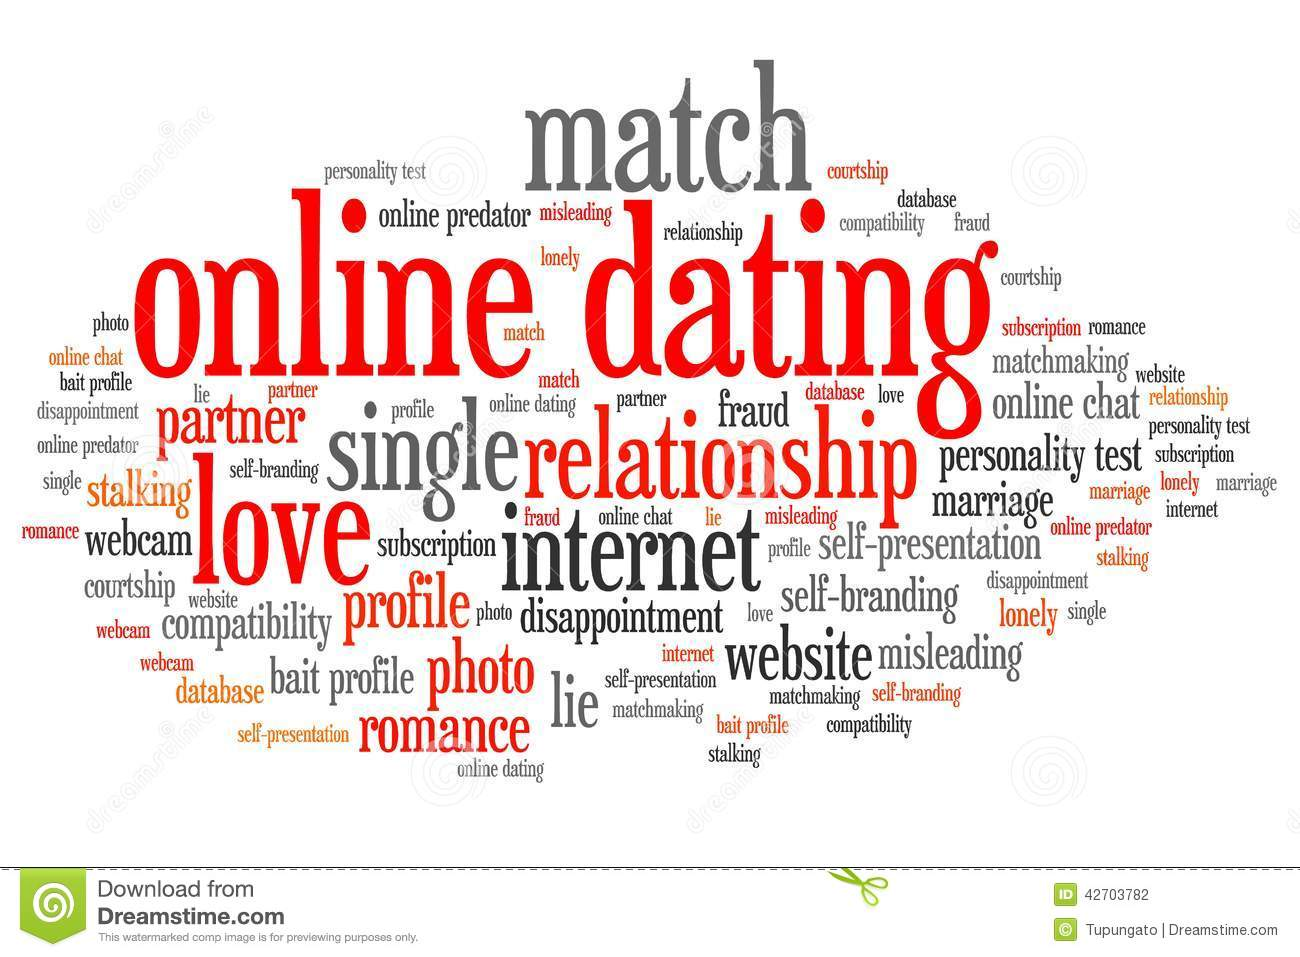 cobram online hookup & dating Hookup id/meetup id/ or dating id is an online identification system required by almost all online dating sites nowadays to ensure the safety of their members hookup id hookup id is an online identification system required by almost all online dating sites nowadays to ensure the safety of their members.